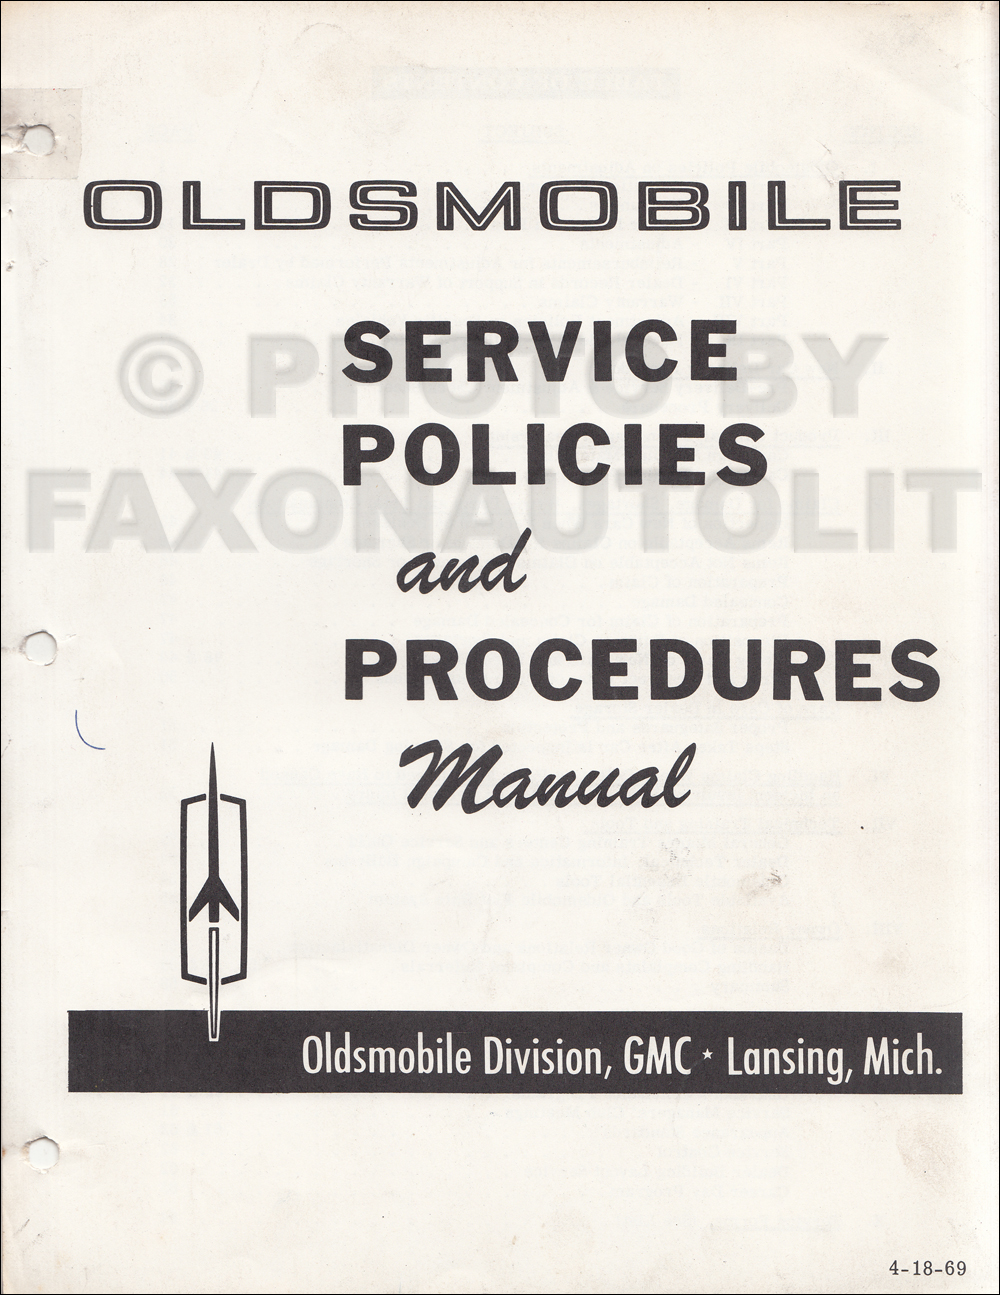 1969 Olds Cutlass F 85 442 Wiring Diagram Manual Reprint 1941 Oldsmobile Service Policies And Procedures Original